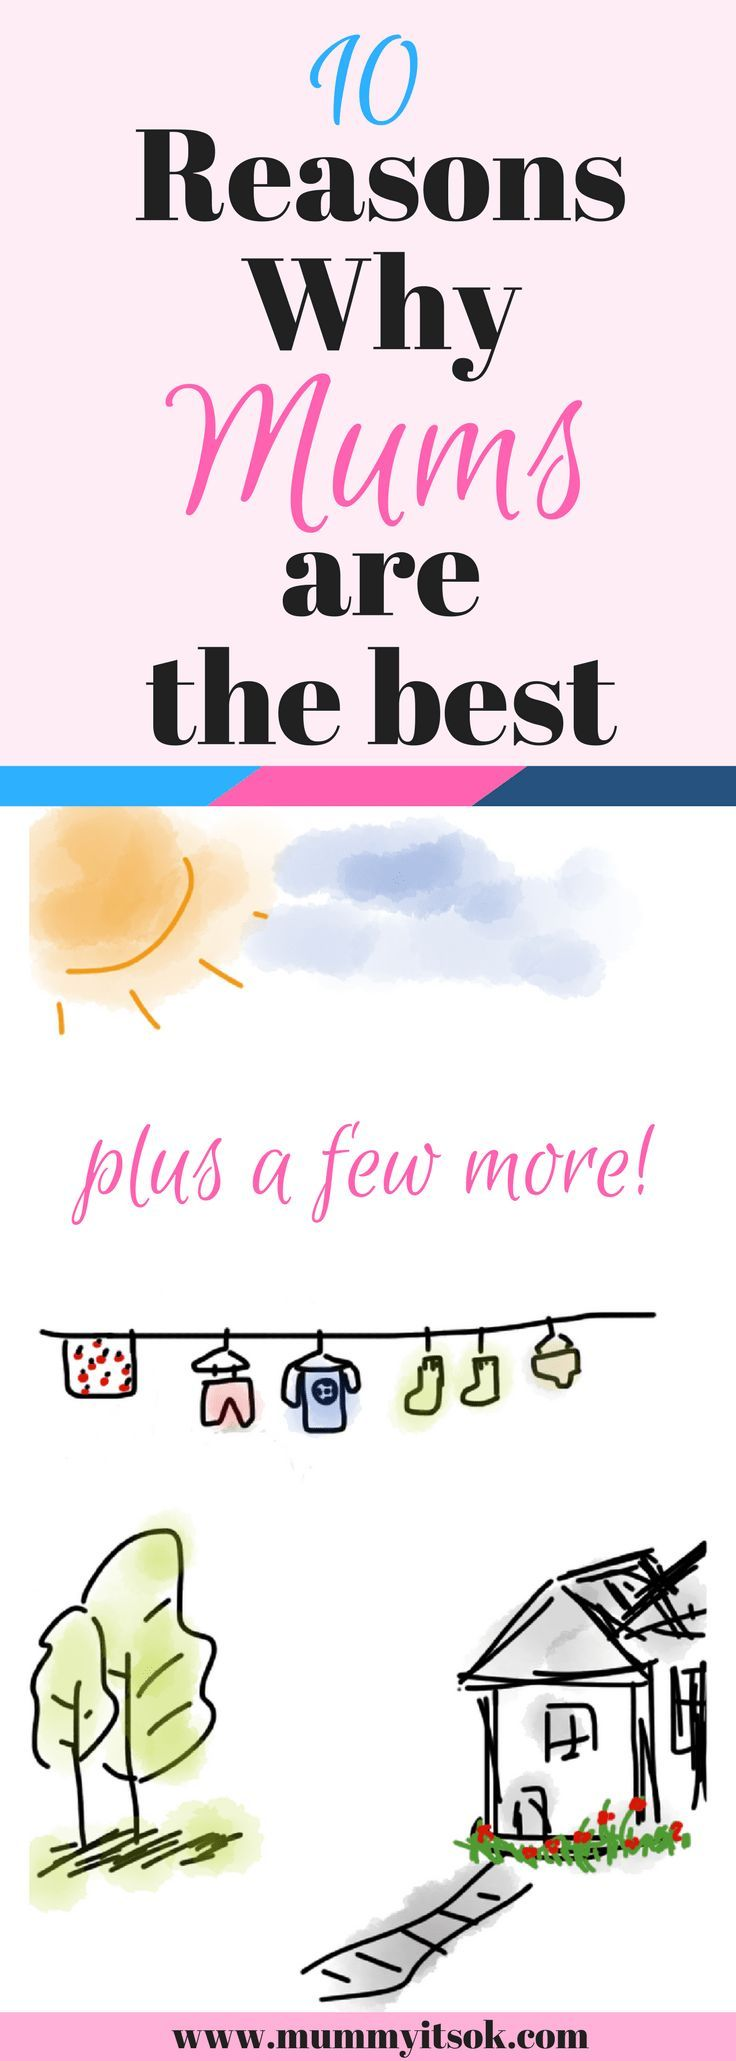 10 reasons why mums are the best, mums are amazing, love you mums, being a mum, super mum, mum is the best, mum is the best mom, rocking motherhood, mum like a boss, boss mum,